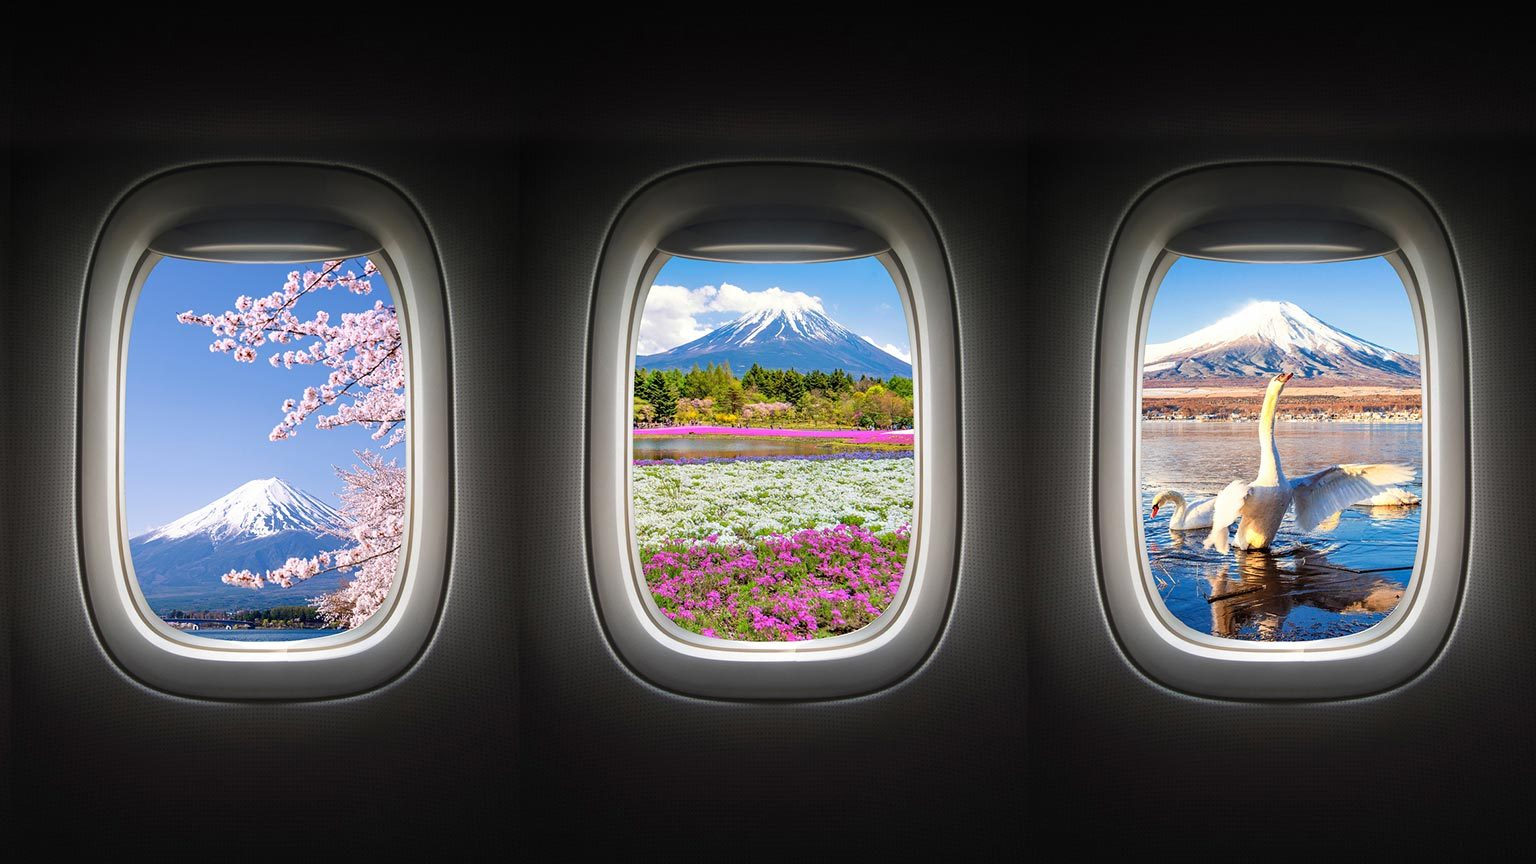 Destinations outside of airplane windows